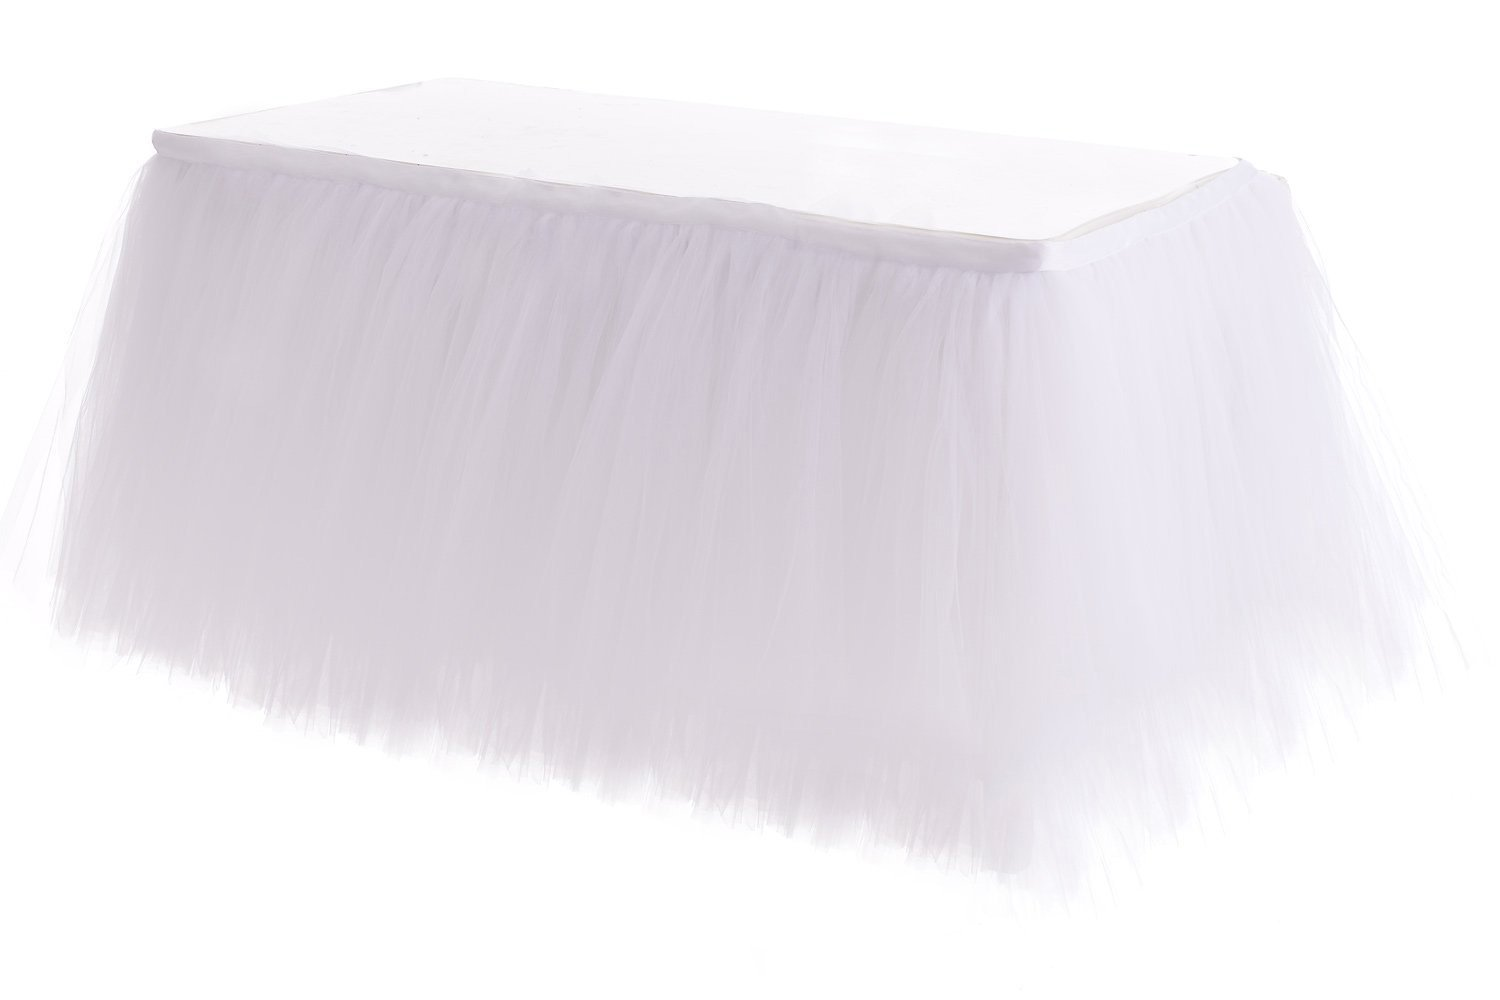 HB HBB MAGIC 6ft White Tulle Table Skirt Tutu Table Skirts Wedding Birthday Baby Shower Party Table Skirting